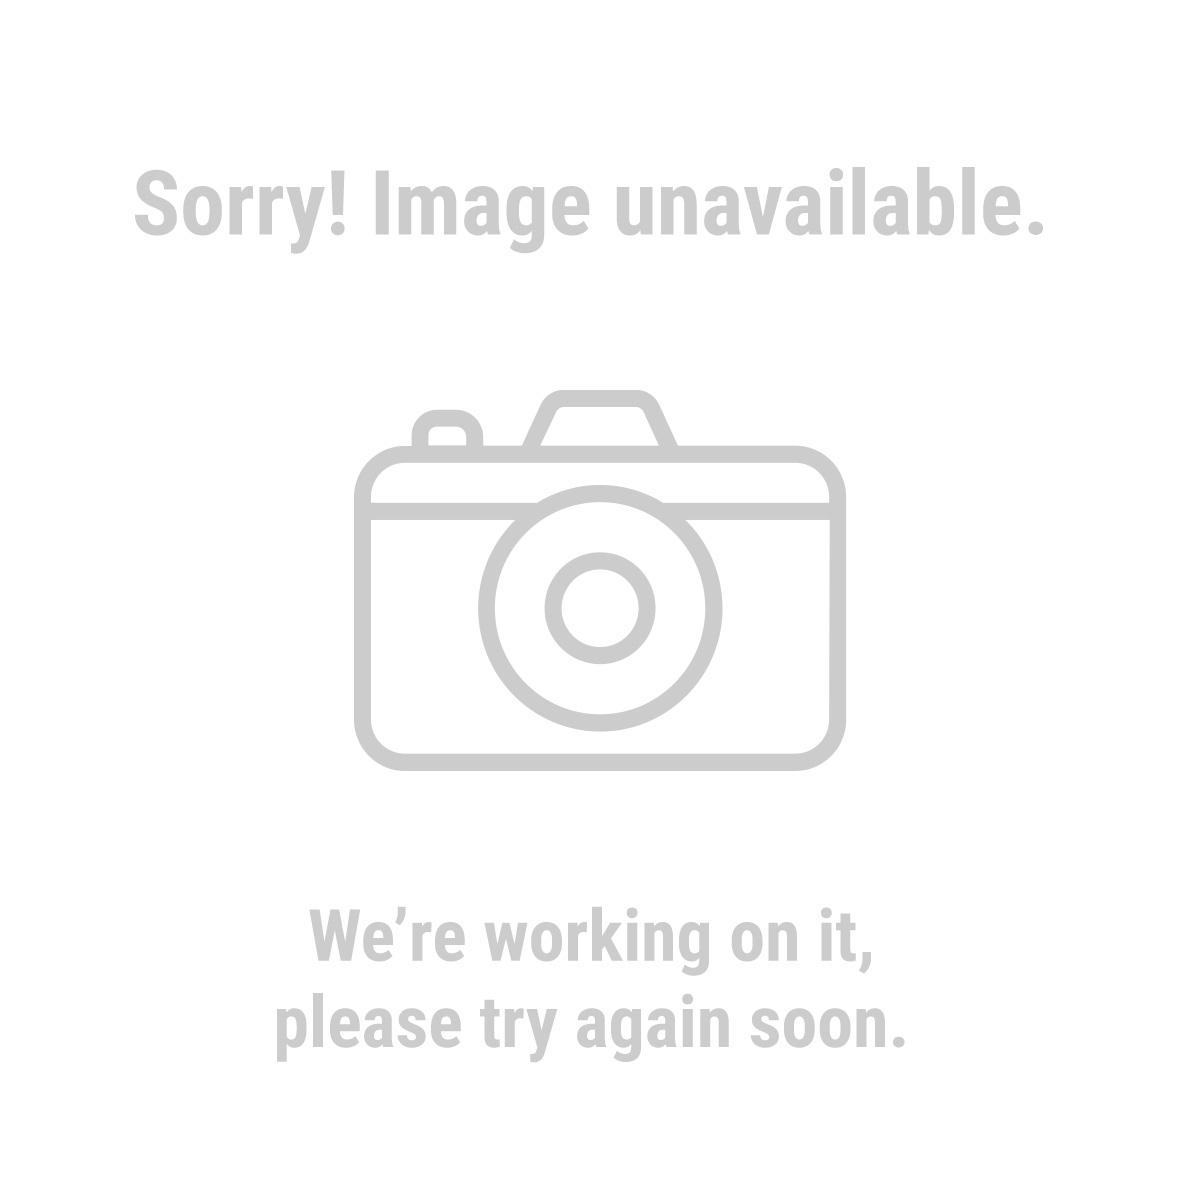 Hydrostar Drain Monster 61856 50 Ft. Compact Electric Drain Cleaner